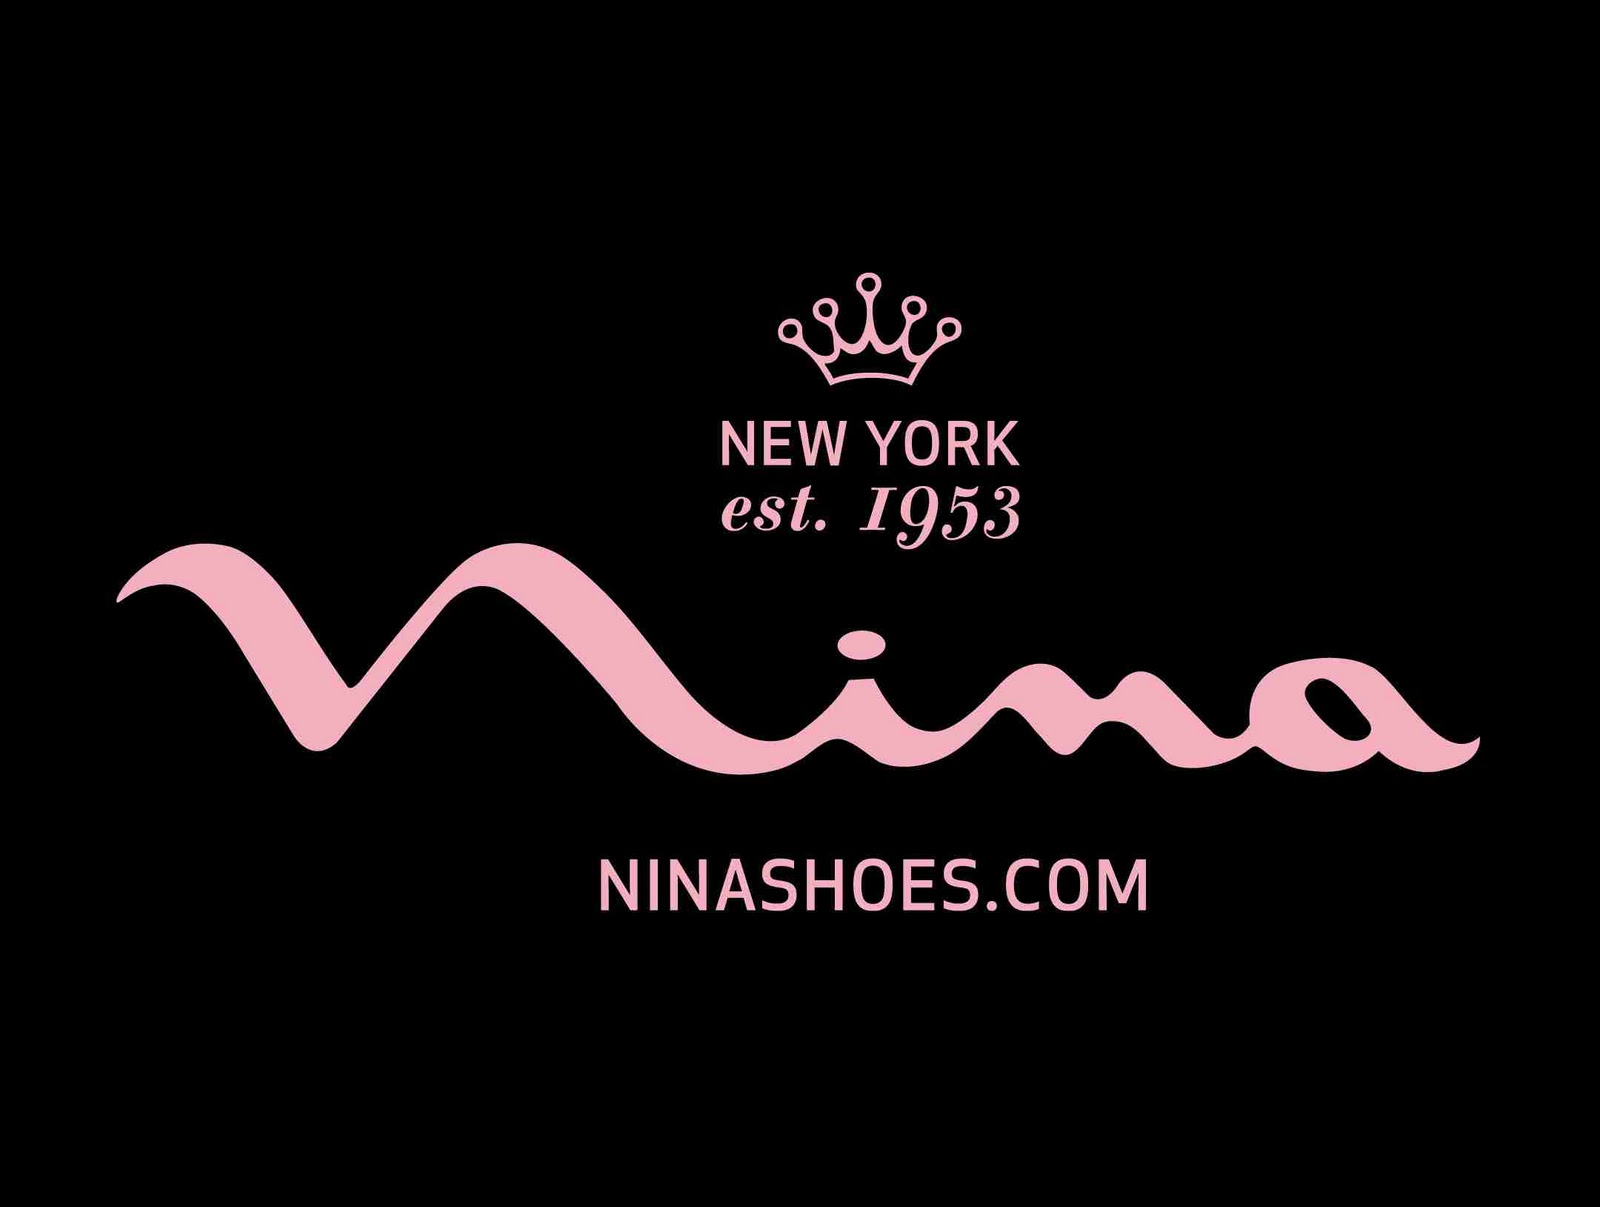 Save with Nina Shoes promo codes and coupons for November Today's top Nina Shoes offer: 15% OFF. Find 7 Nina Shoes coupons and discounts at regey.cf Tested and verified on November 20,